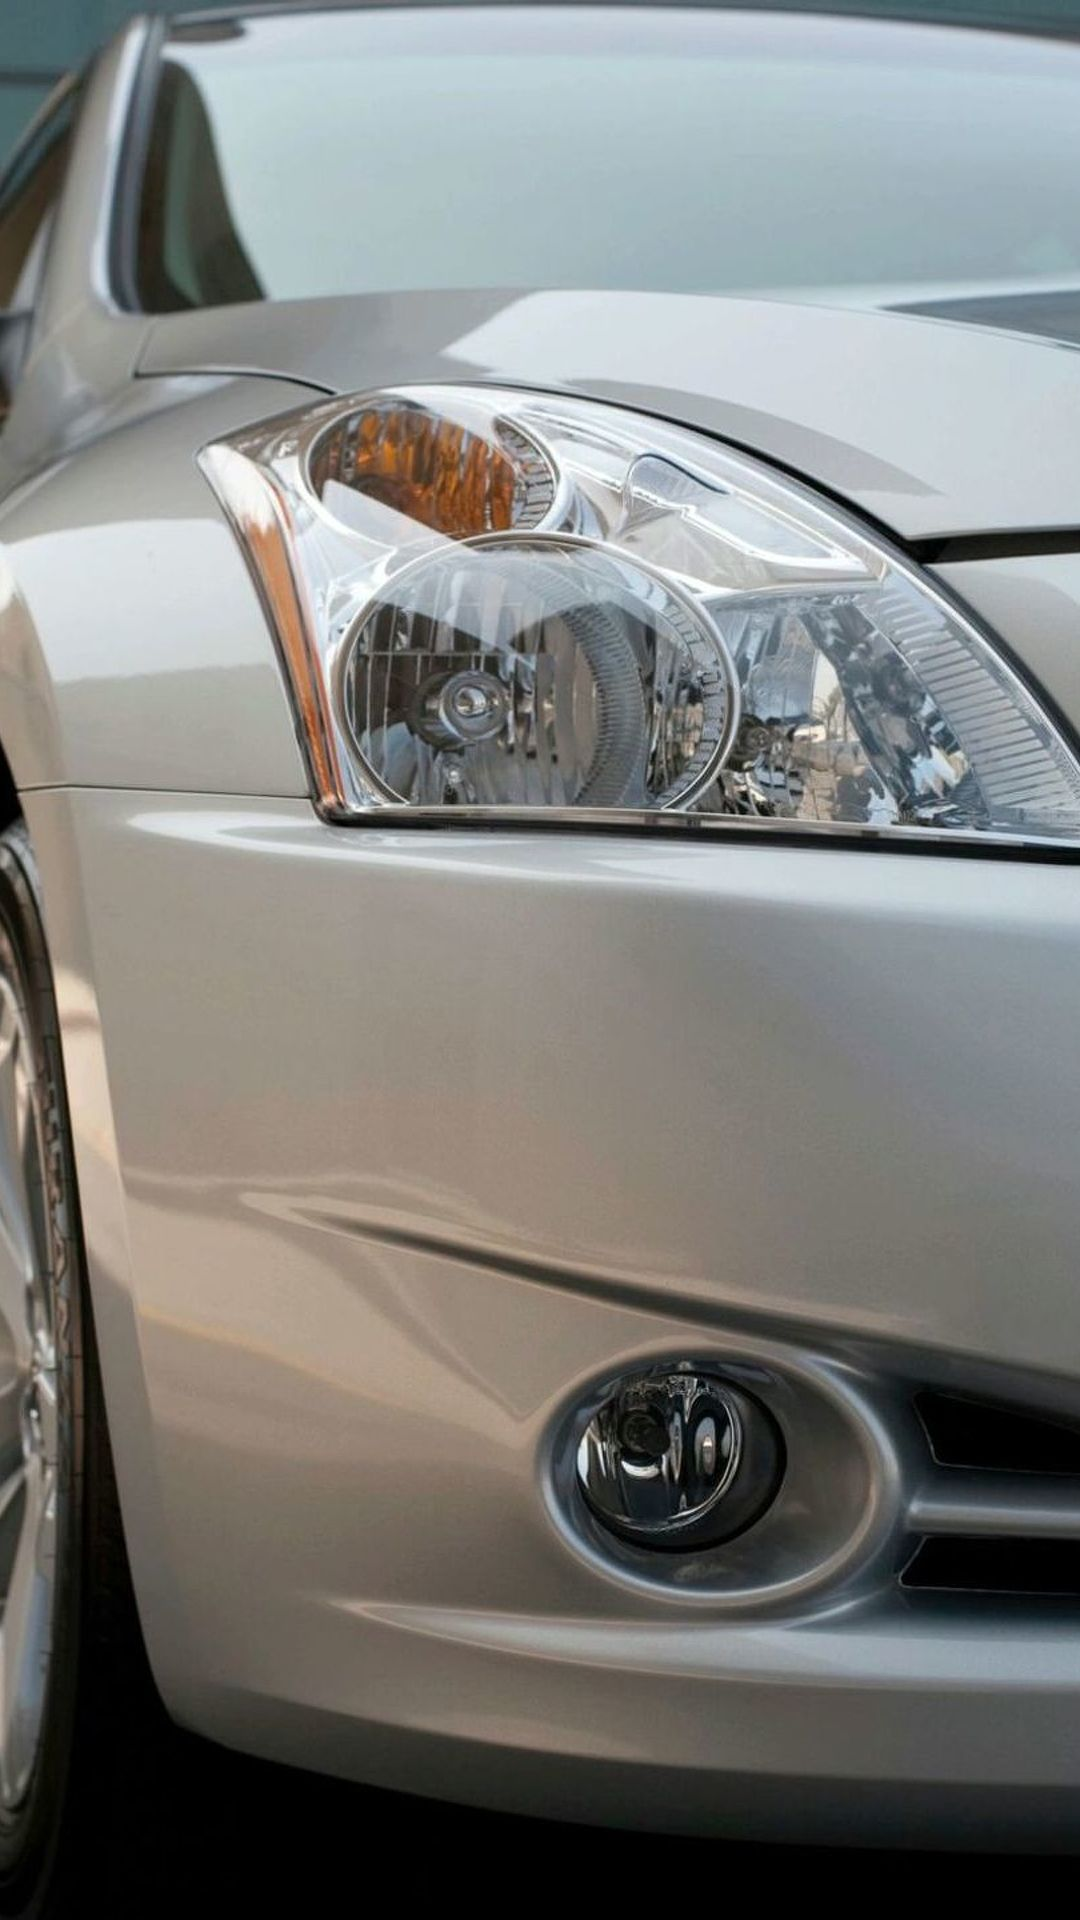 2010 Nissan Altima Teaser Photo Released